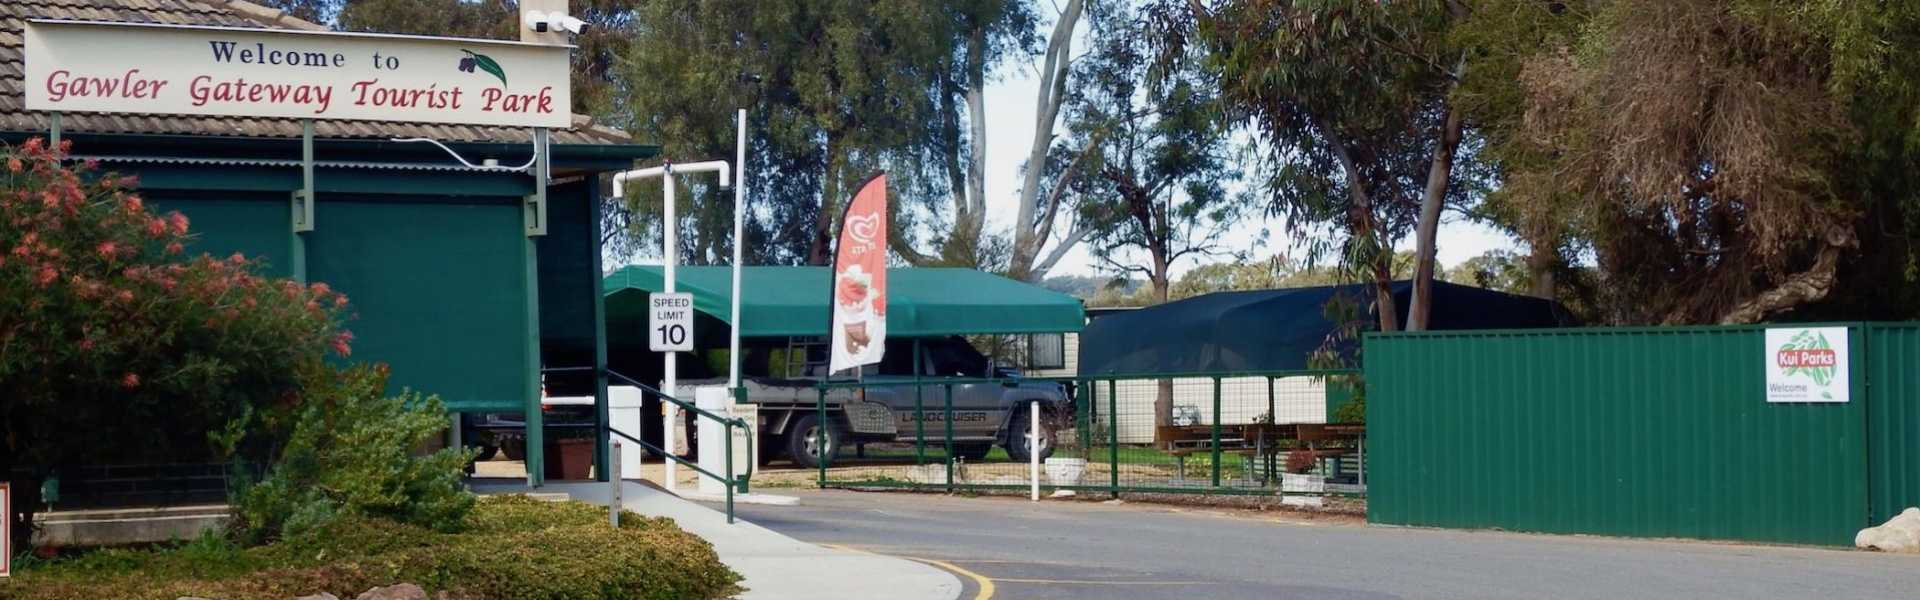 Kui Parks, Gawler Gateway Tourist Park, Entrance